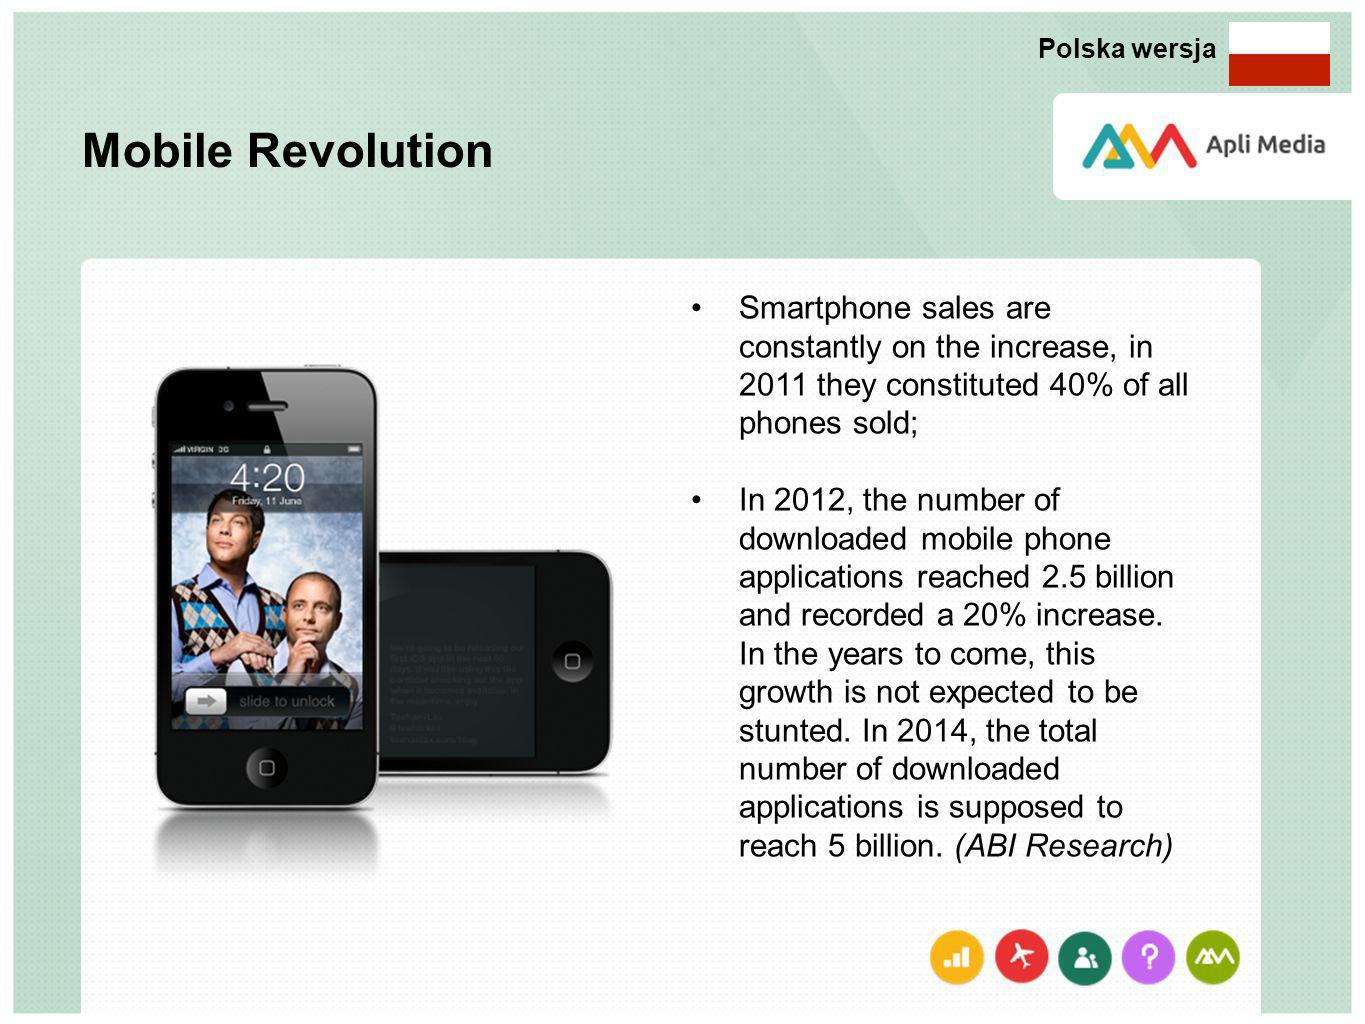 Mobile Revolution Smartphone sales are constantly on the increase, in 2011 they constituted 40% of all phones sold; In 2012, the number of downloaded mobile phone applications reached 2.5 billion and recorded a 20% increase.